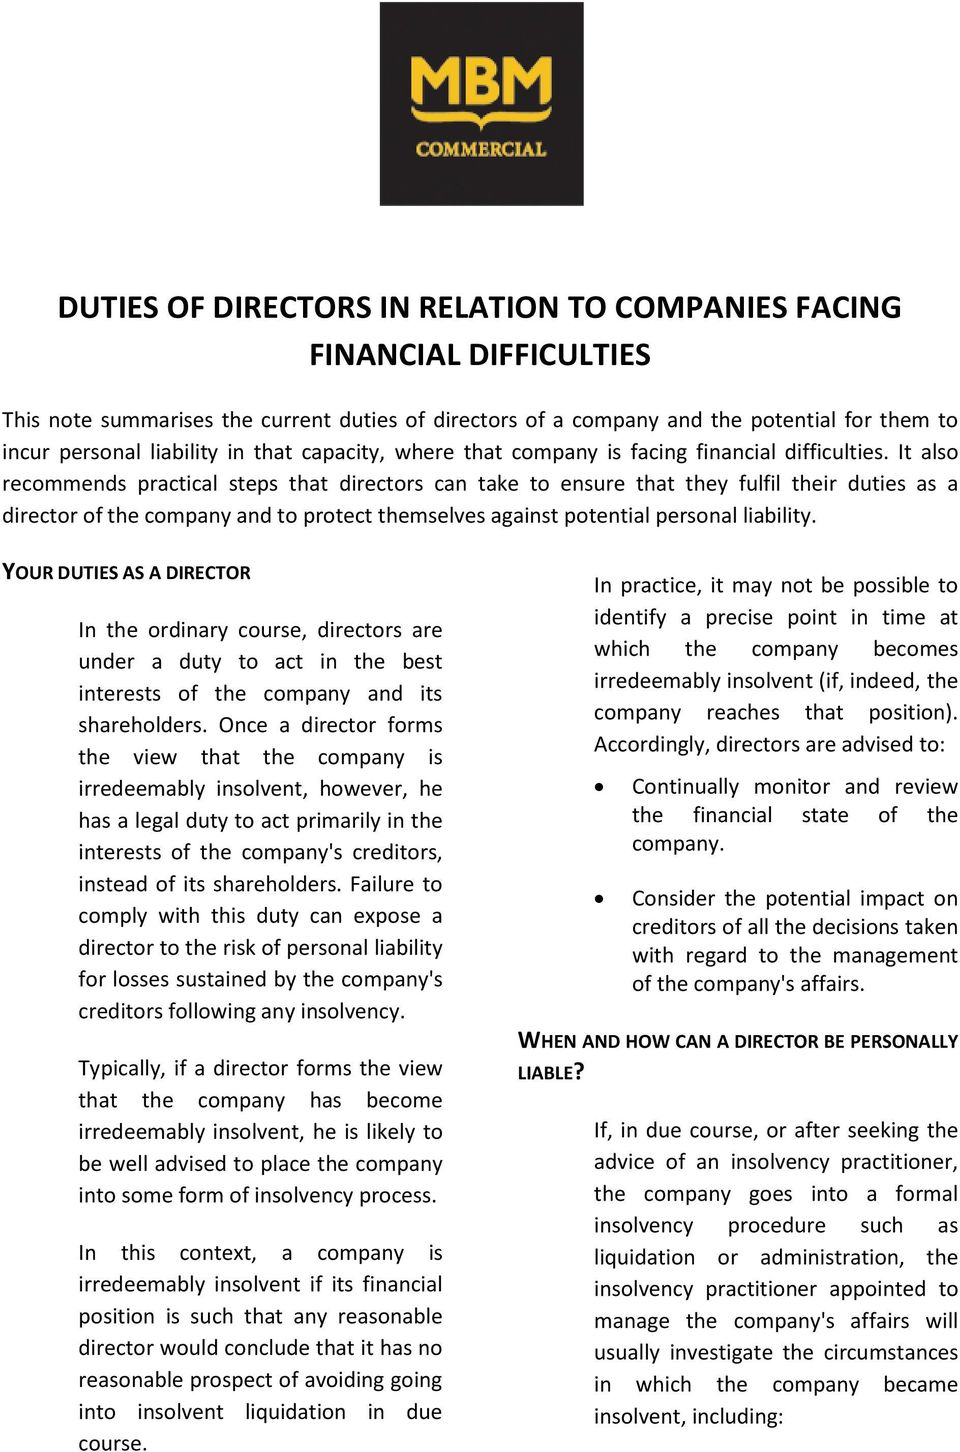 It also recommends practical steps that directors can take to ensure that they fulfil their duties as a director of the company and to protect themselves against potential personal liability.